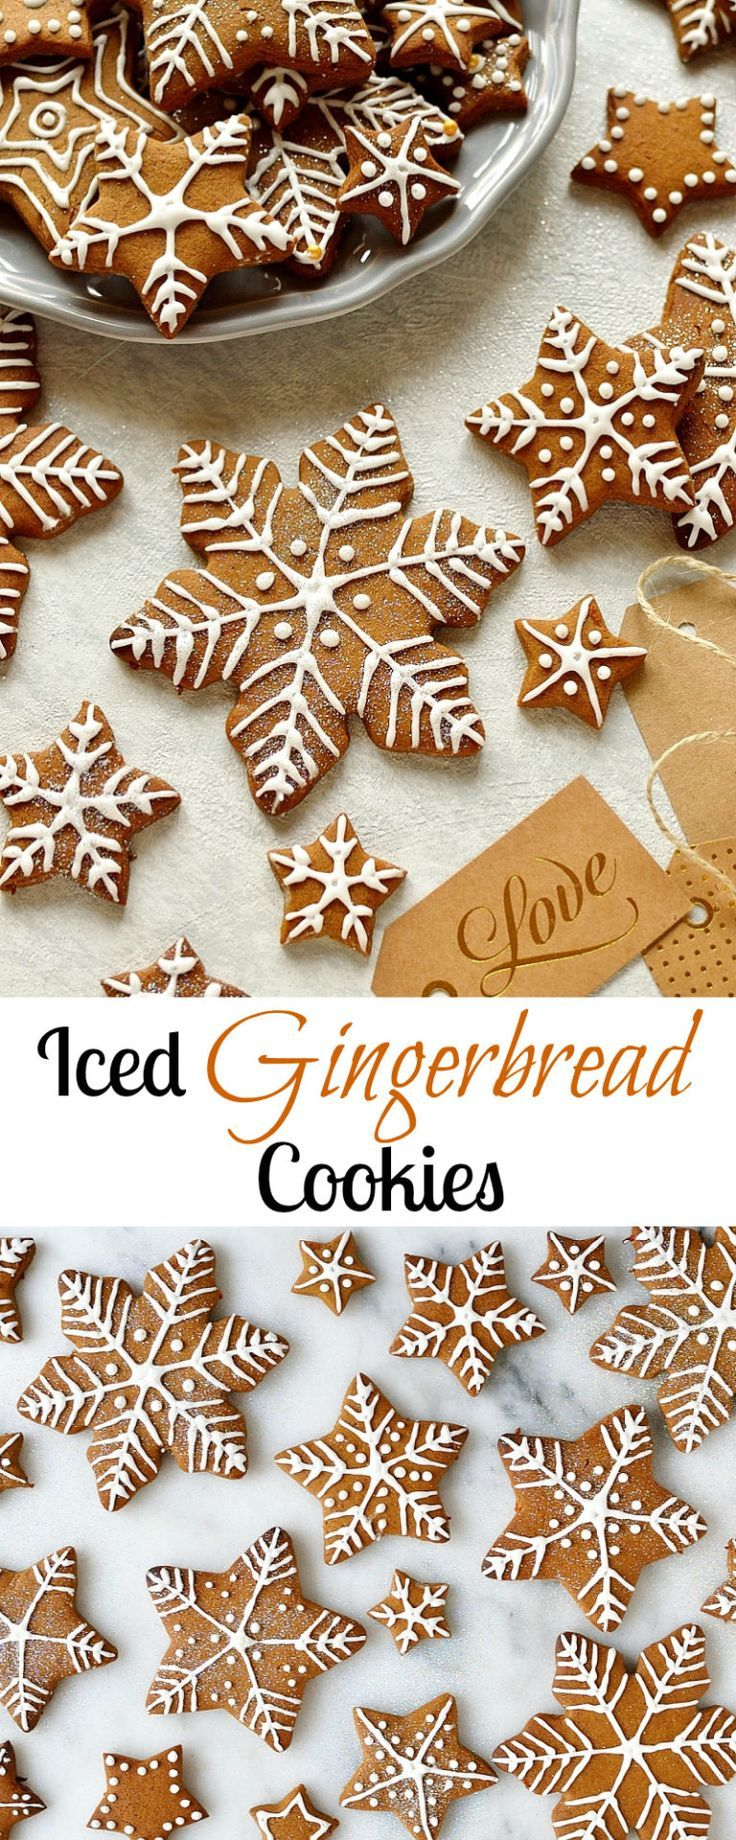 Iced Gingerbread Cookies Gingerbread Cookies Decorated In 2019